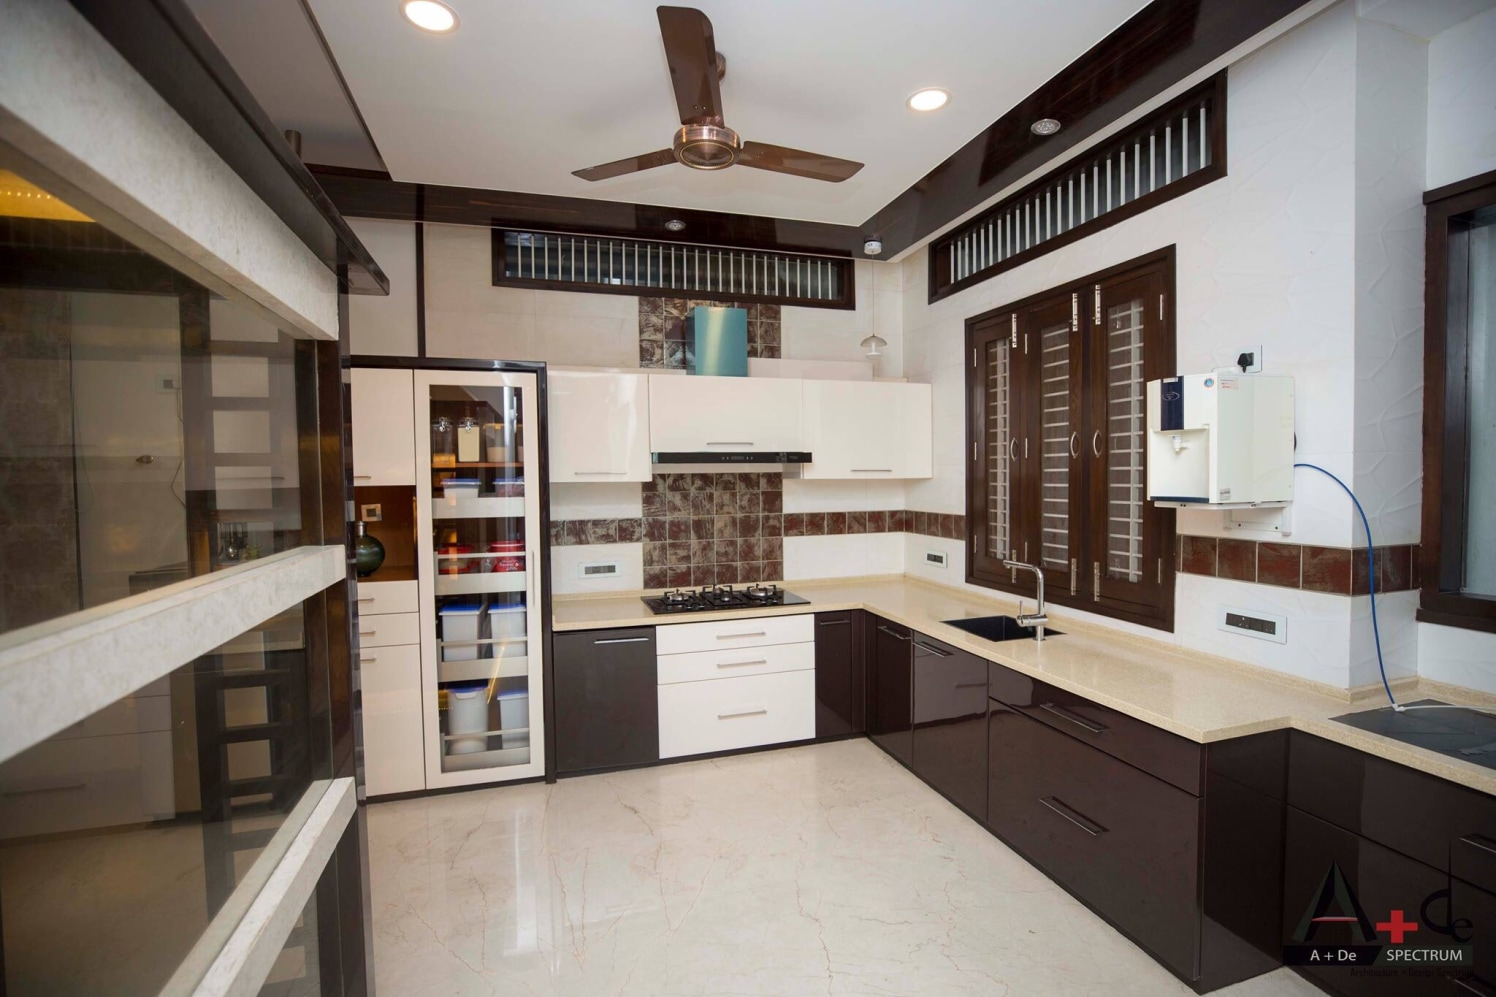 Standard Modular Kitchen With Brown And White Fiitings By A De Spectrum